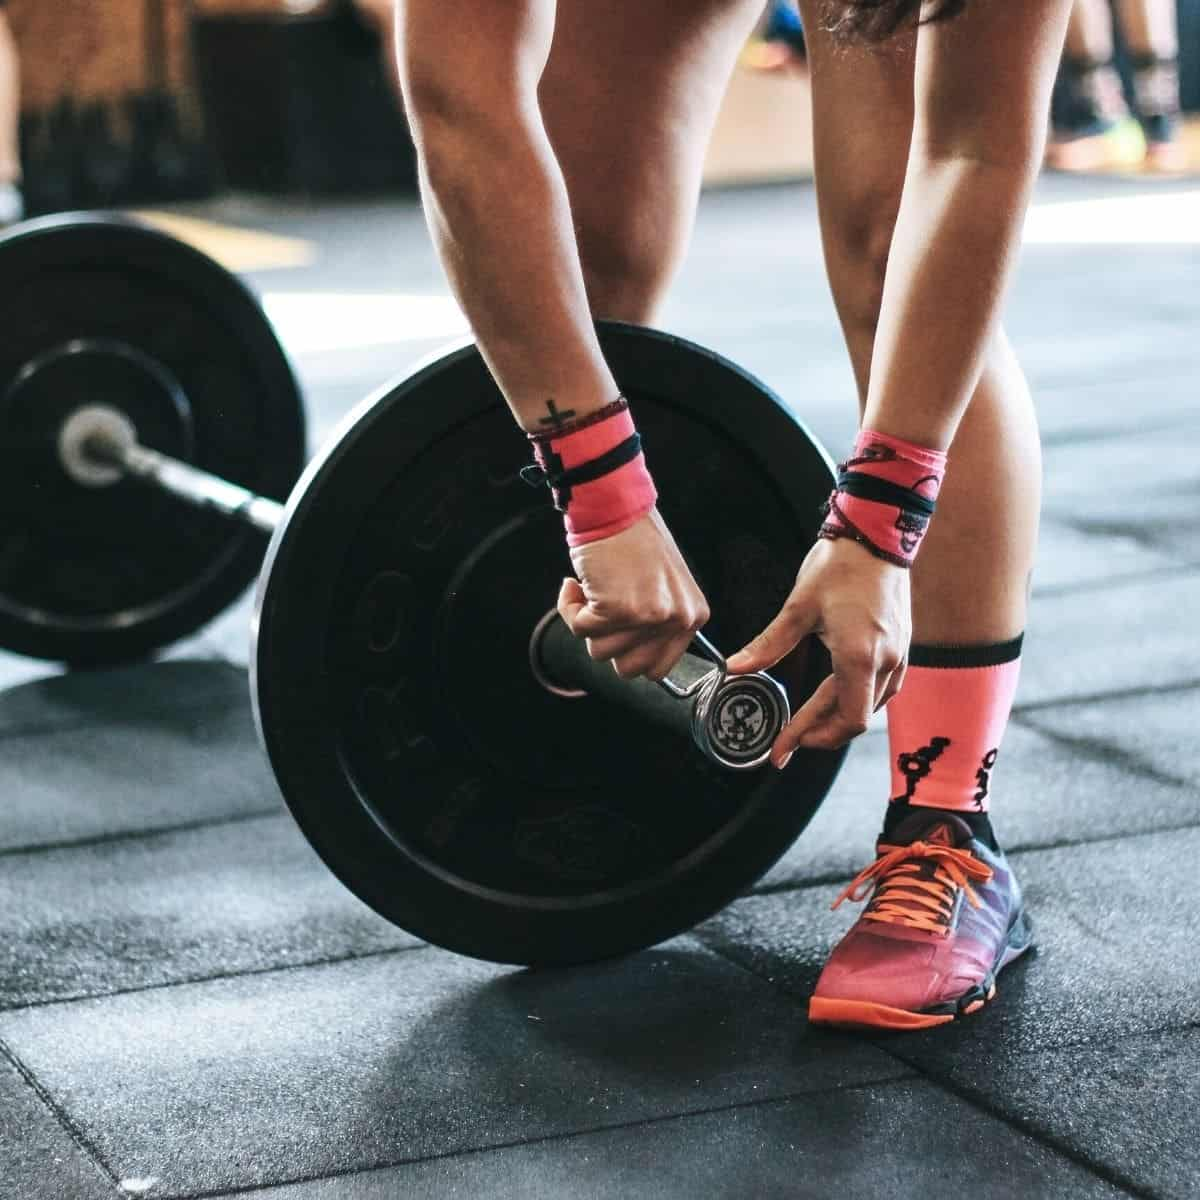 The 16.1 CrossFit Workout